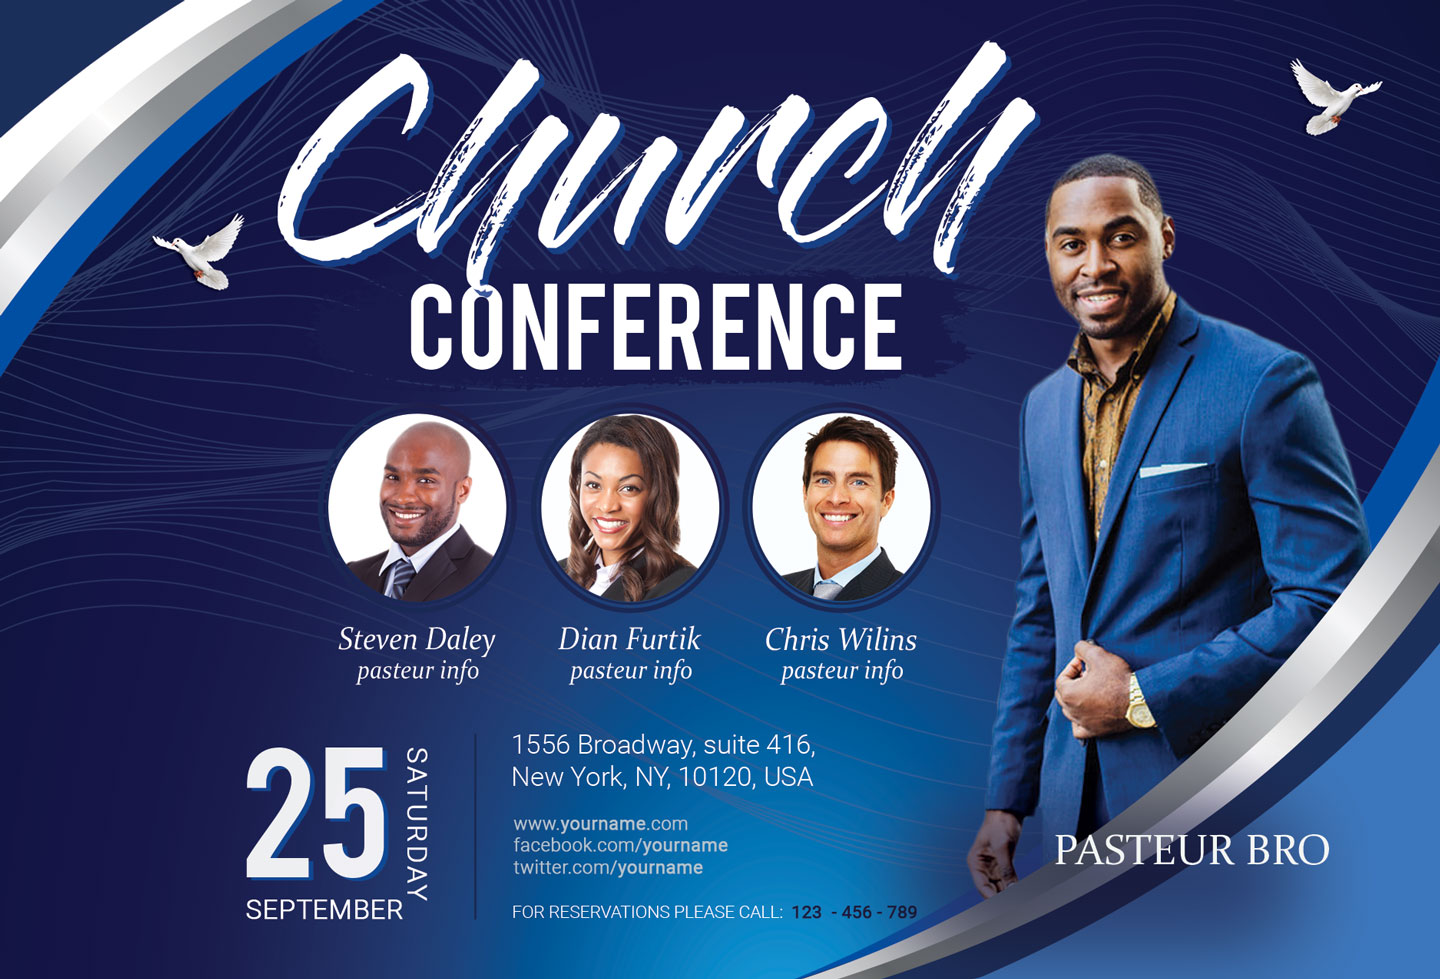 Church Conference Flyer example image 2